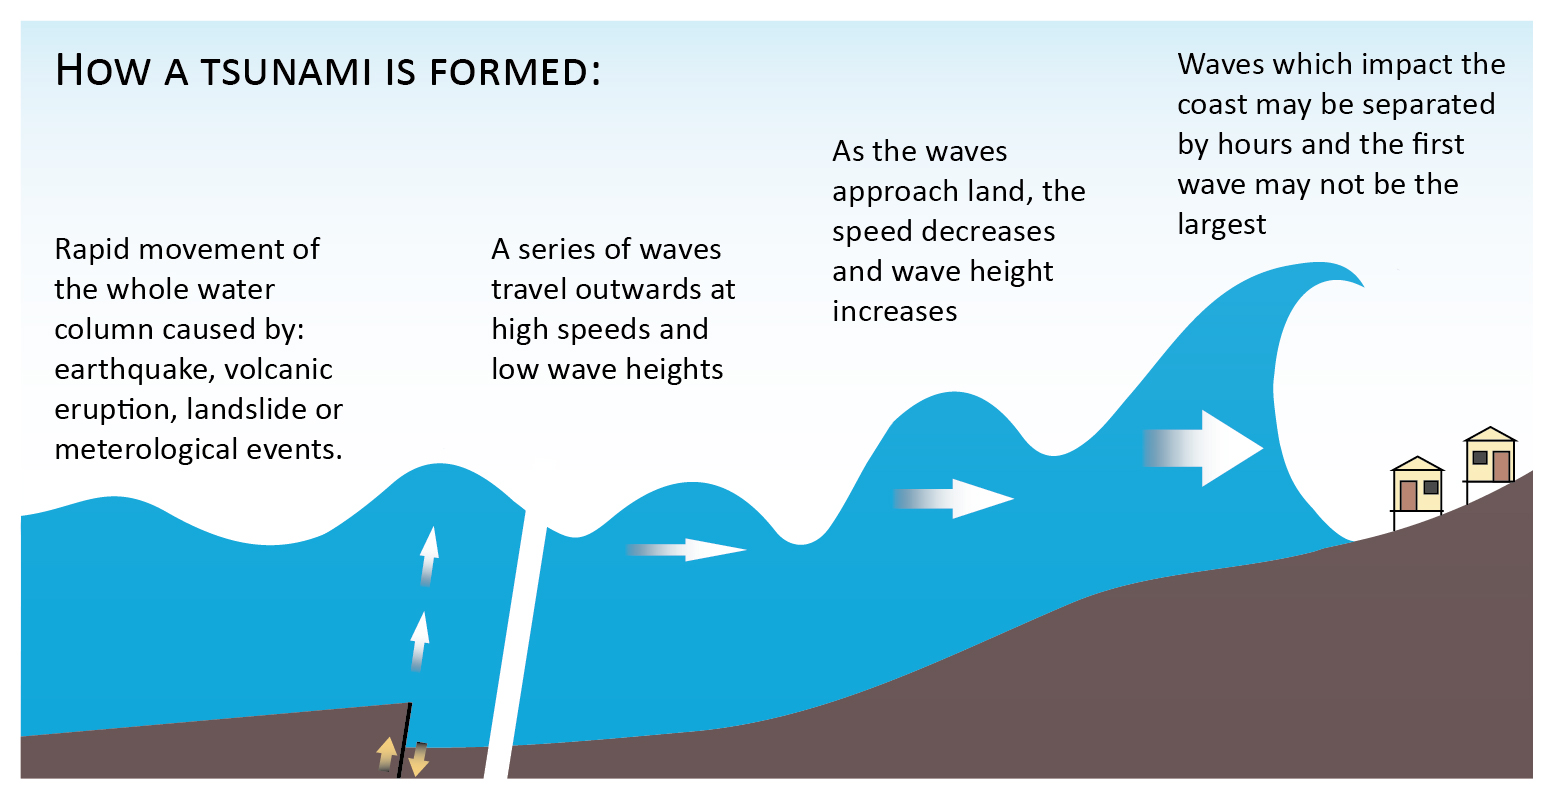 how a tsunami is formed drawn by Grant Wilson.jpg